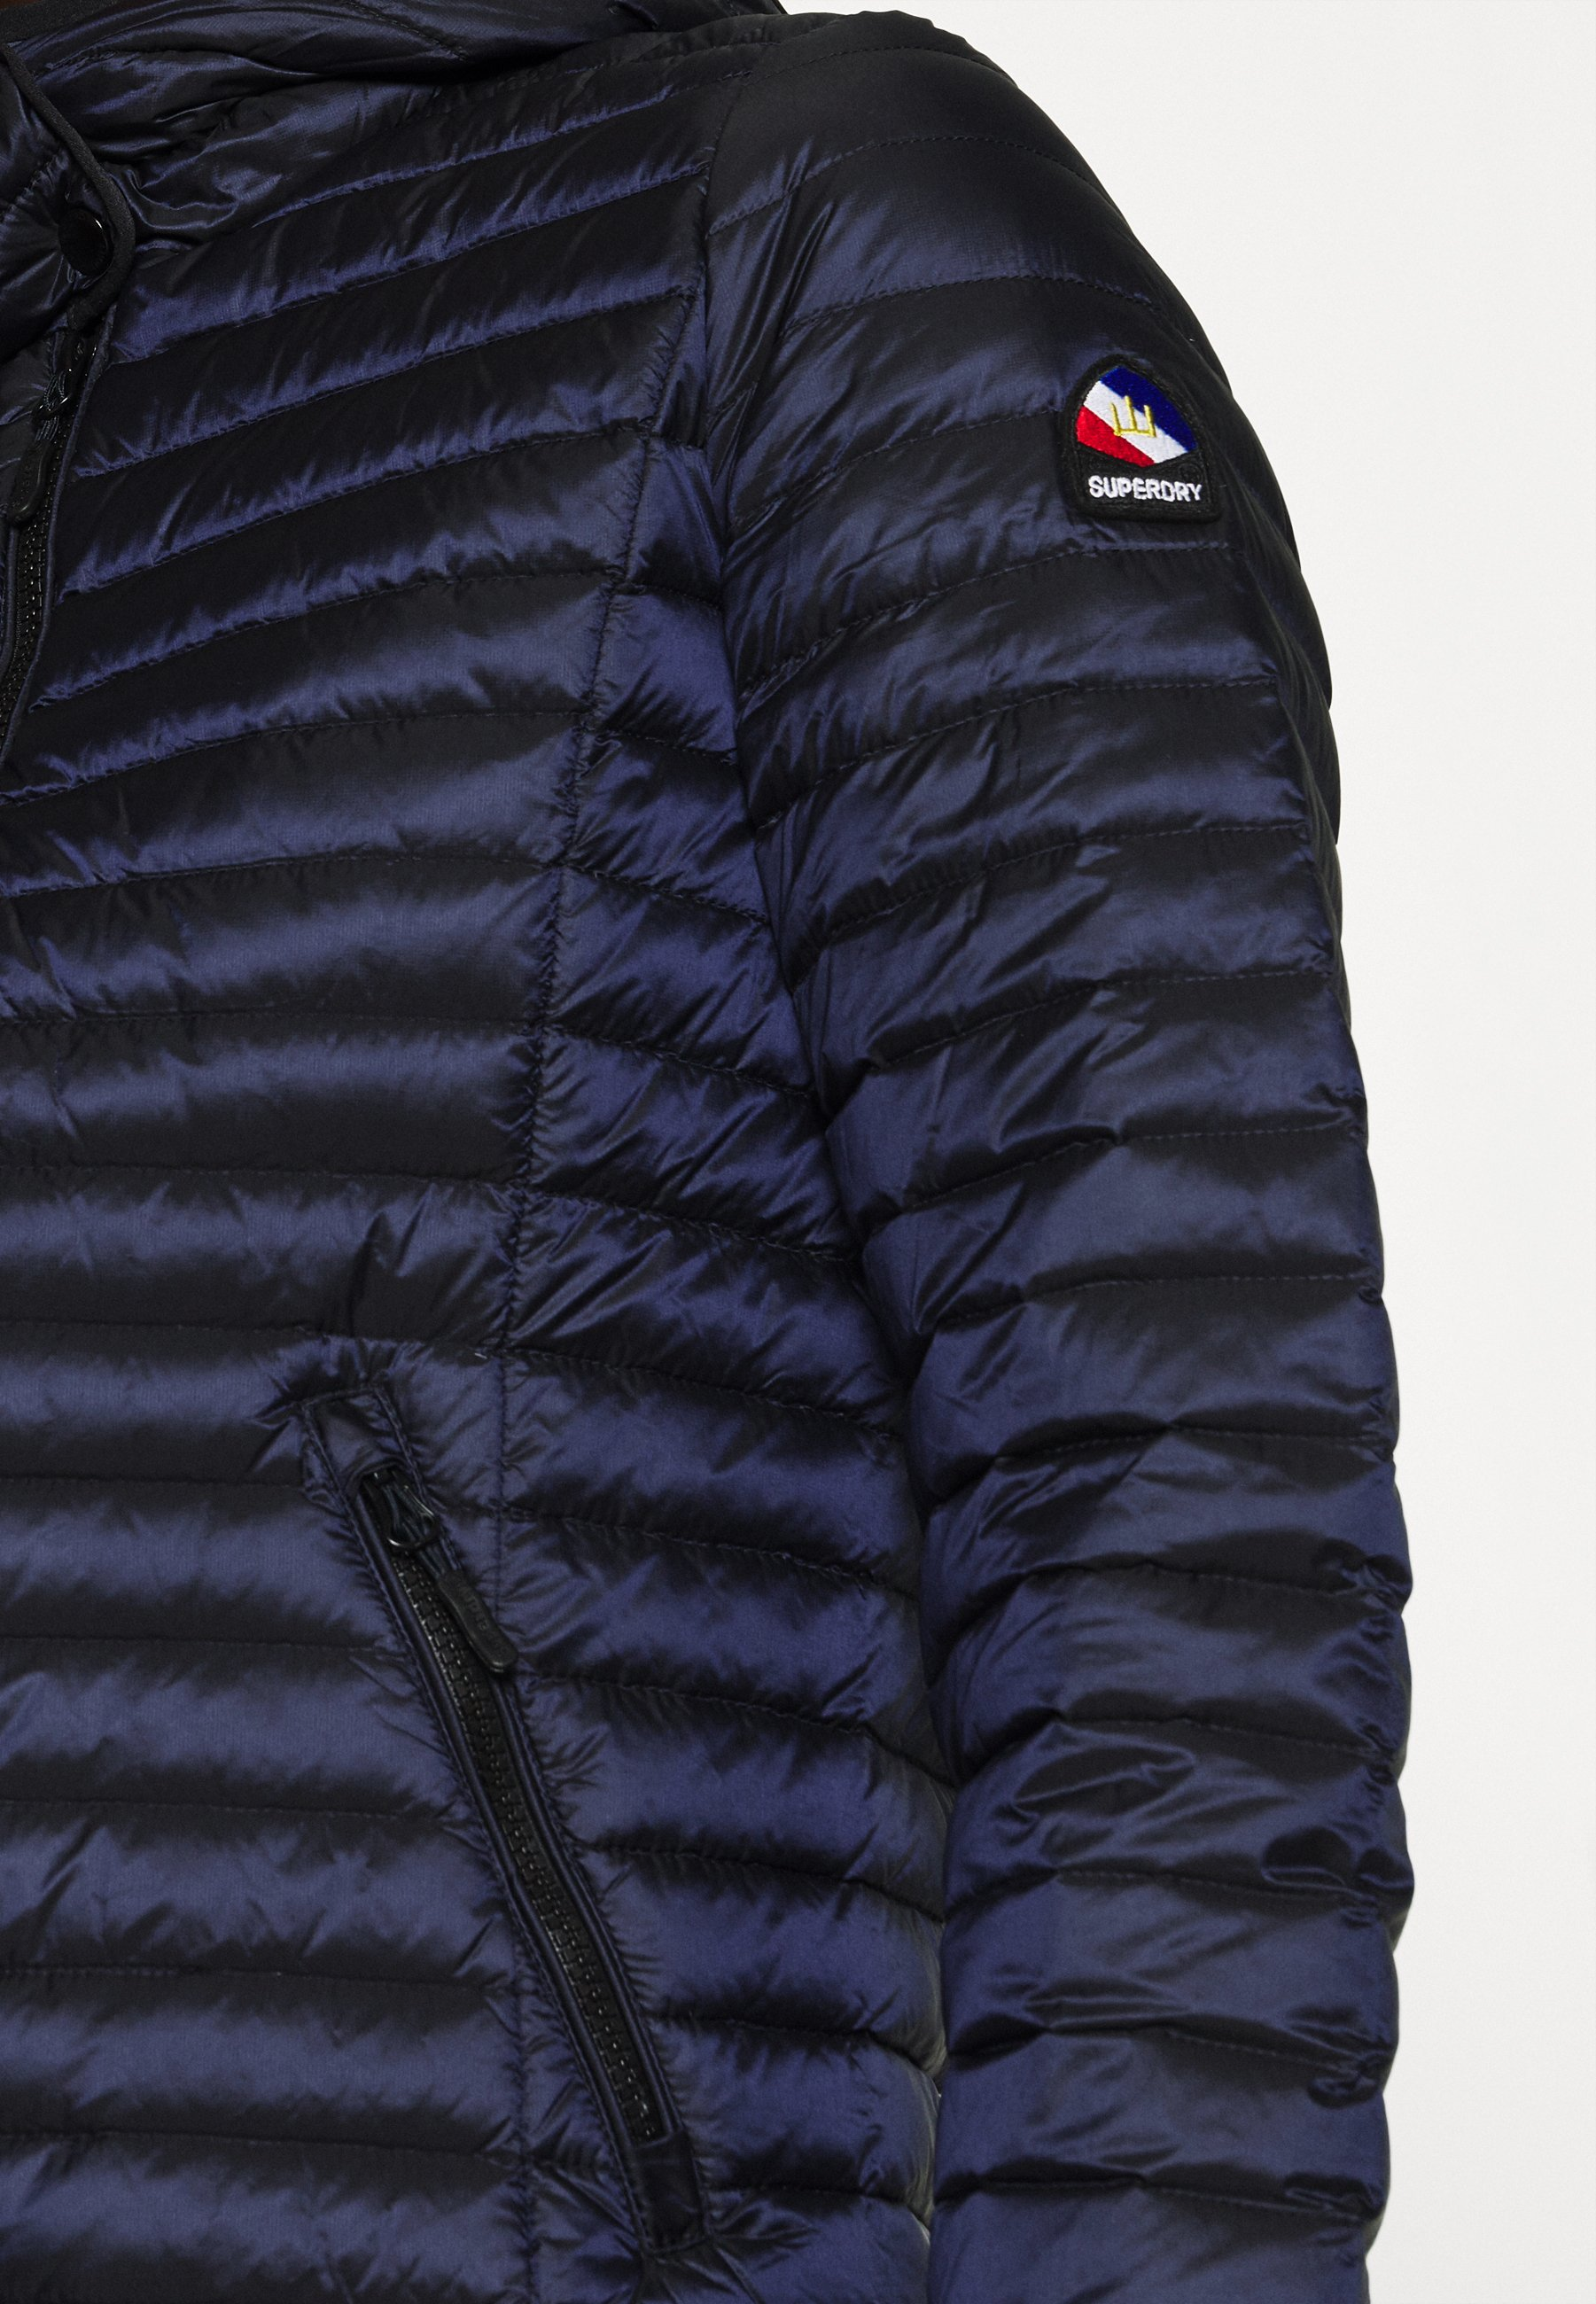 Amazing Price Aaa Quality Women's Clothing Superdry CORE Down jacket darkest navy klTdncufR IQQG6x4Rz